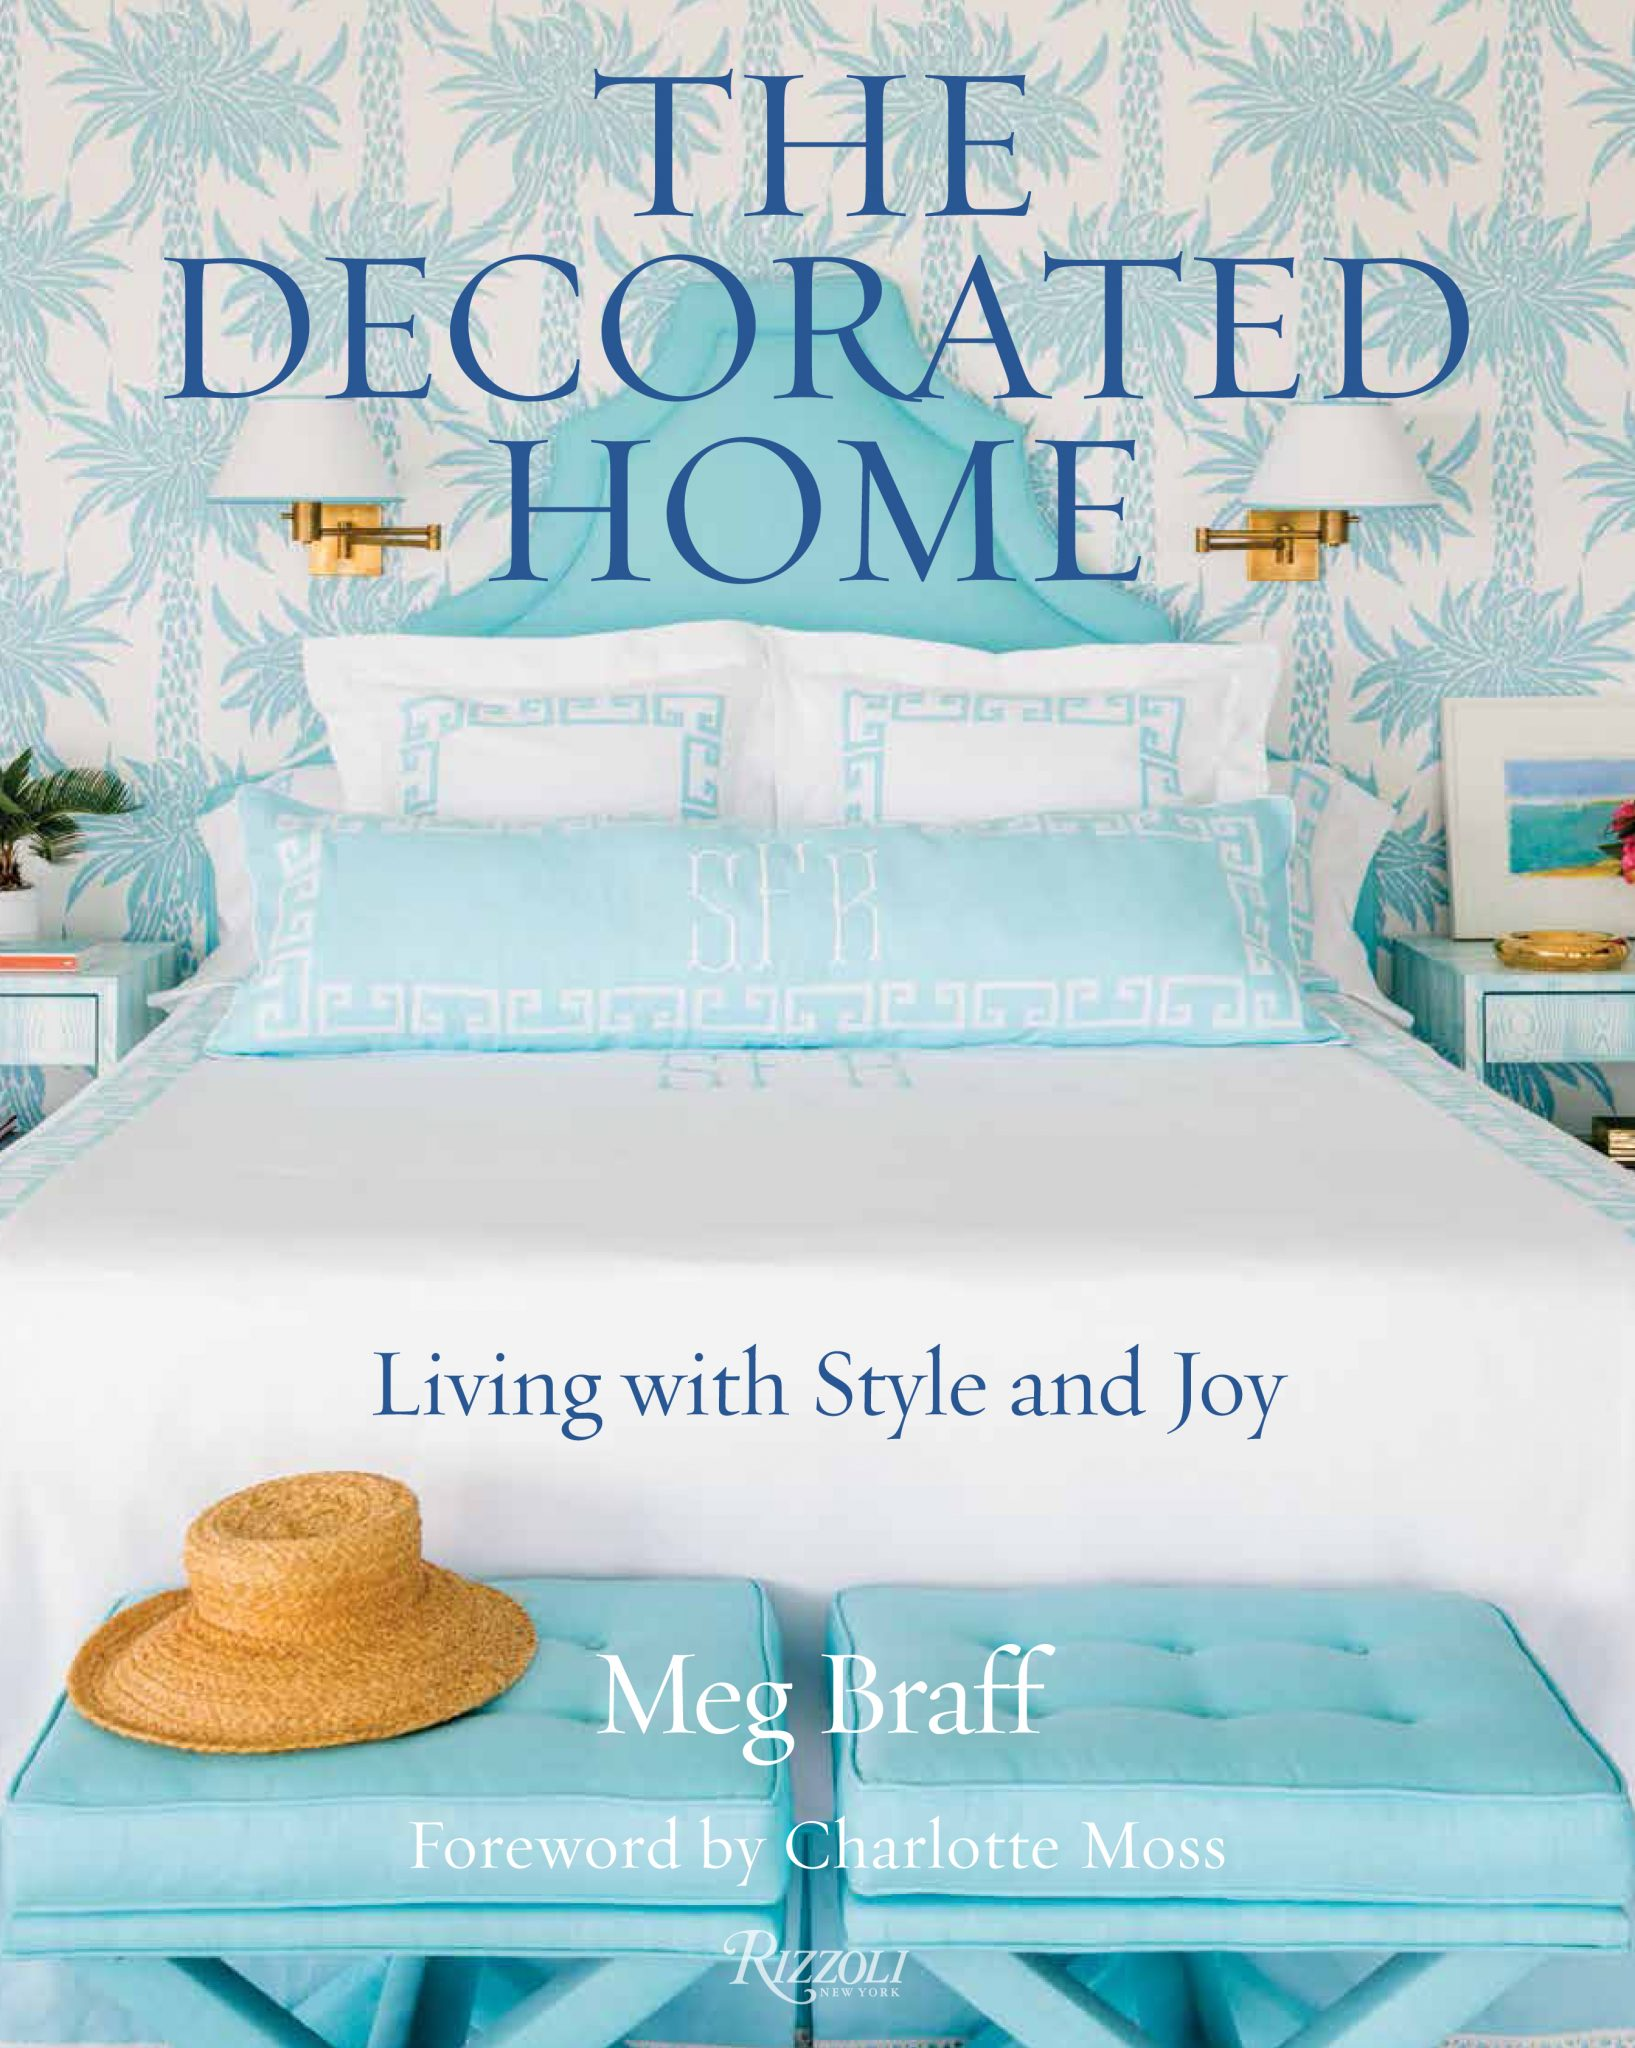 Meg Braff at Palette Home